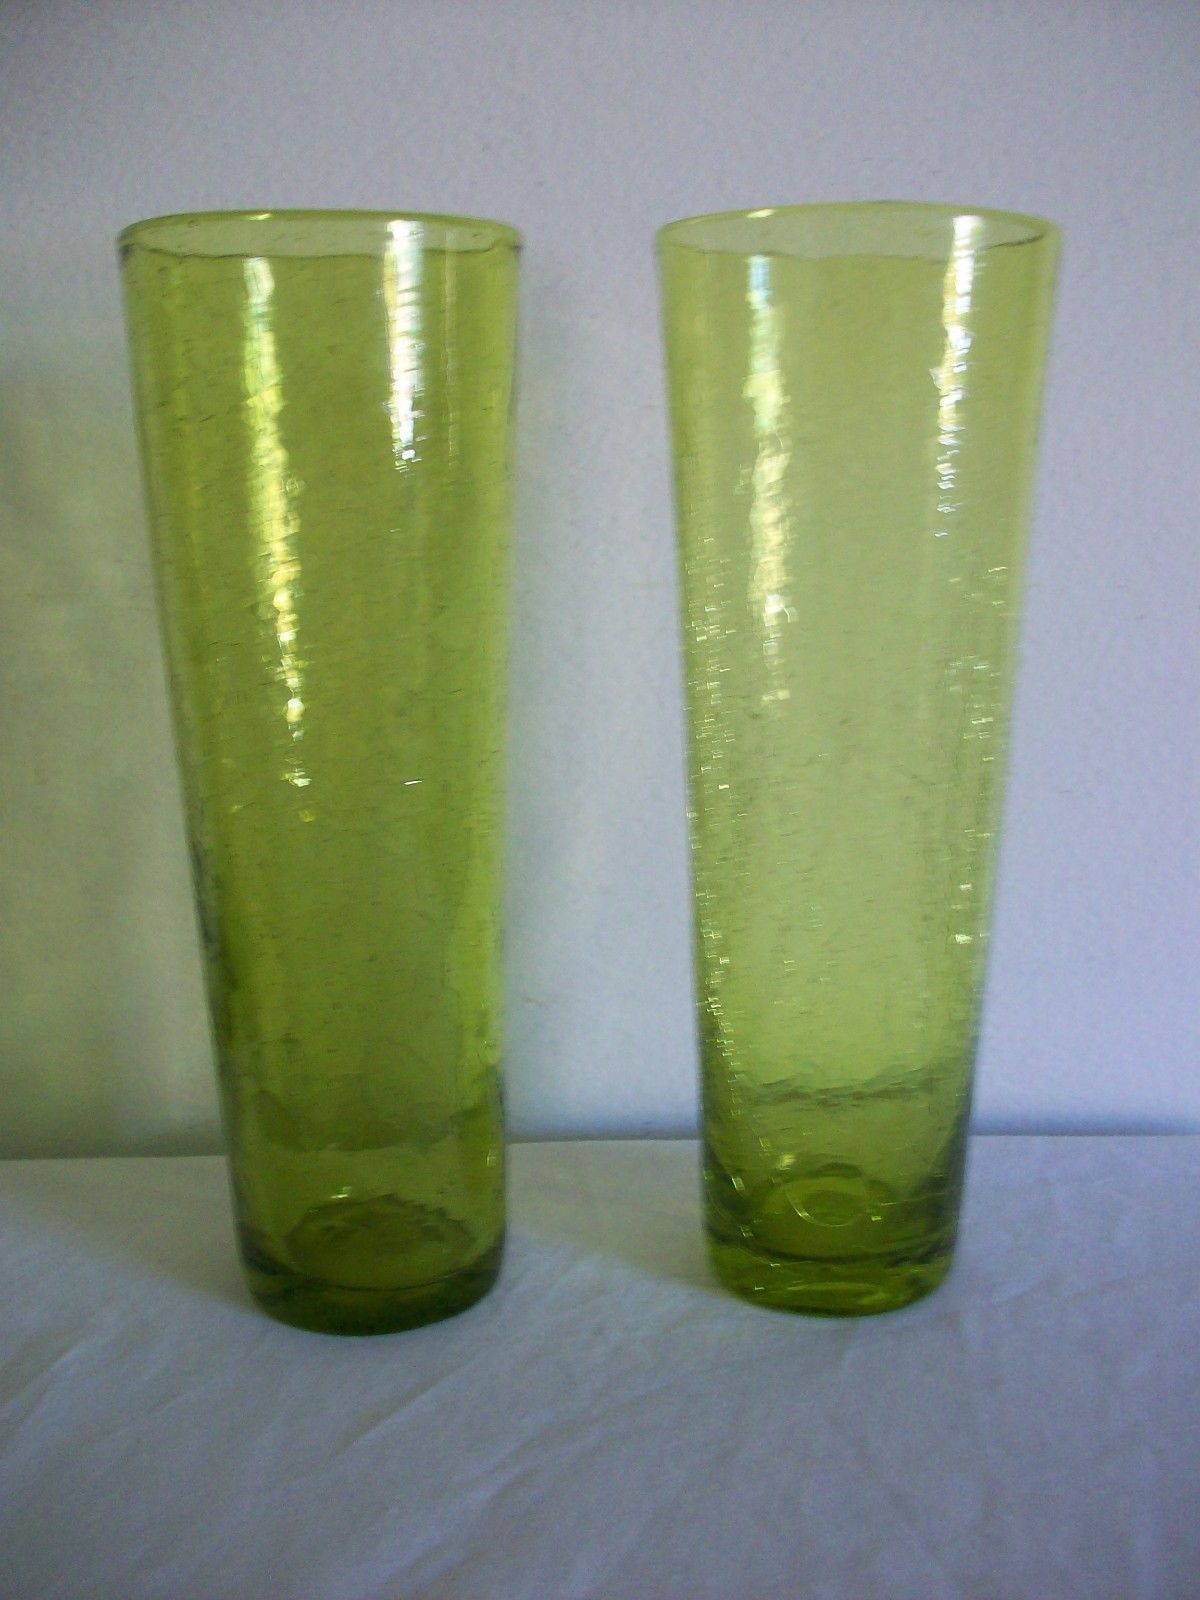 2 vintage light olive green crackle glass vases with pontil marks 2 vintage light olive green crackle glass vases with pontil marks i believe these were reviewsmspy